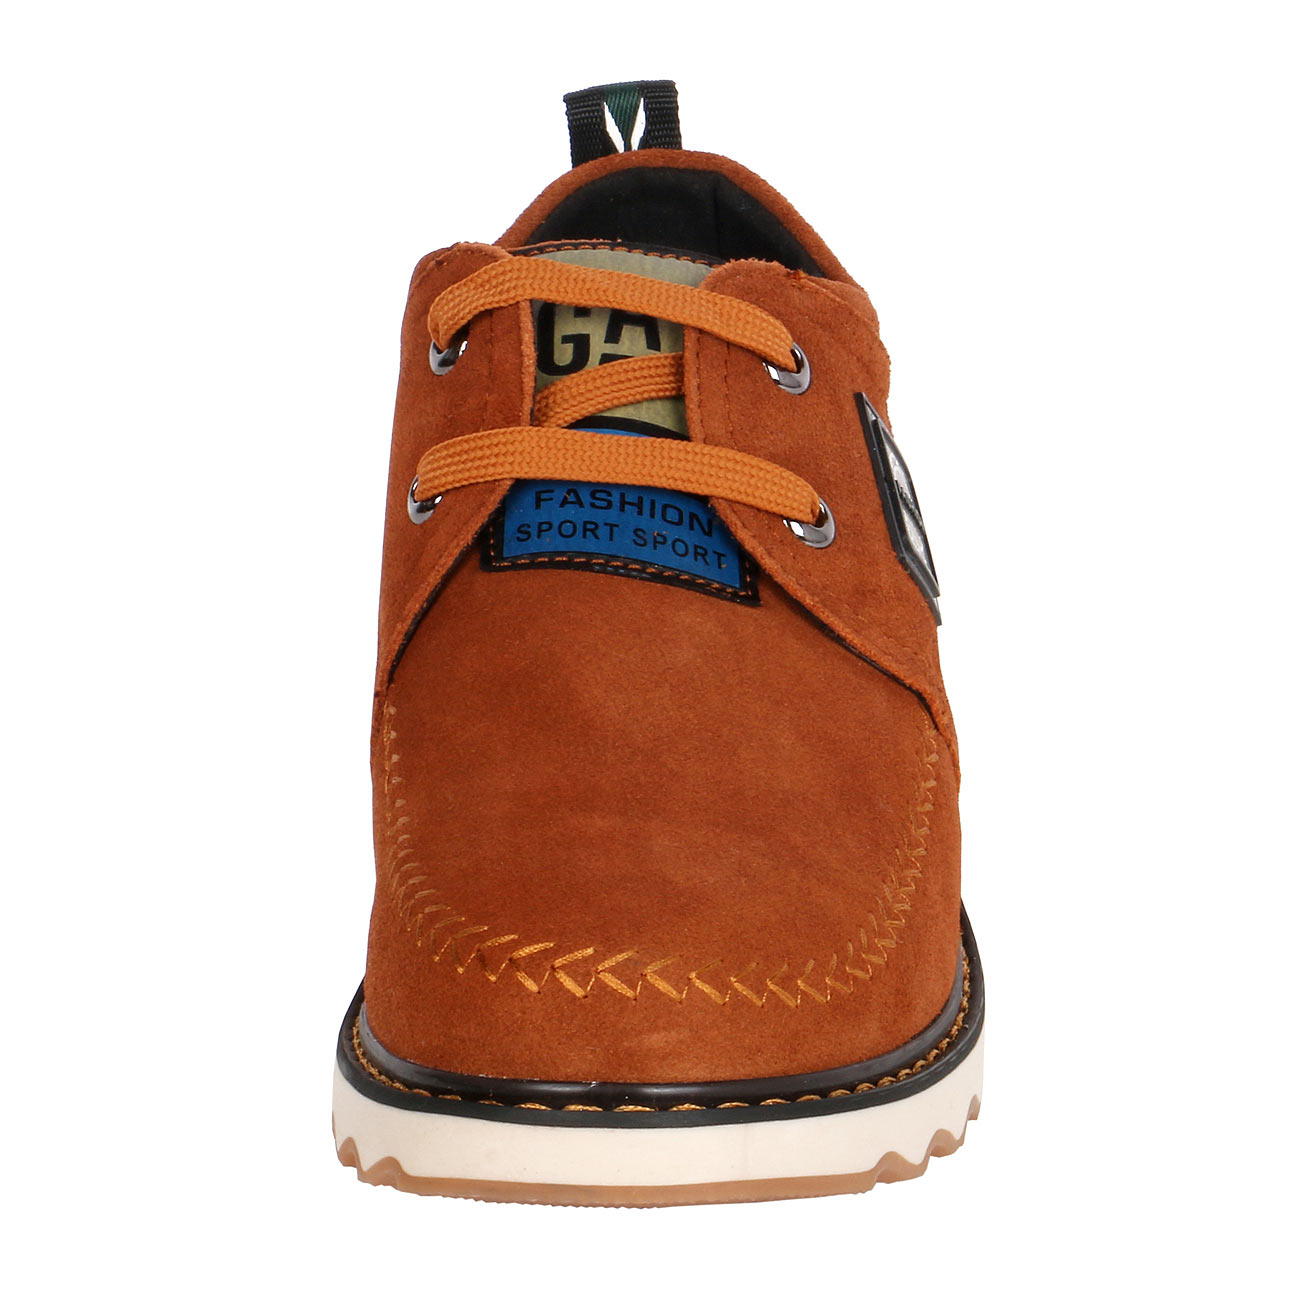 Campus Outdoor Life Men's Suede Casual Shoe 2.4